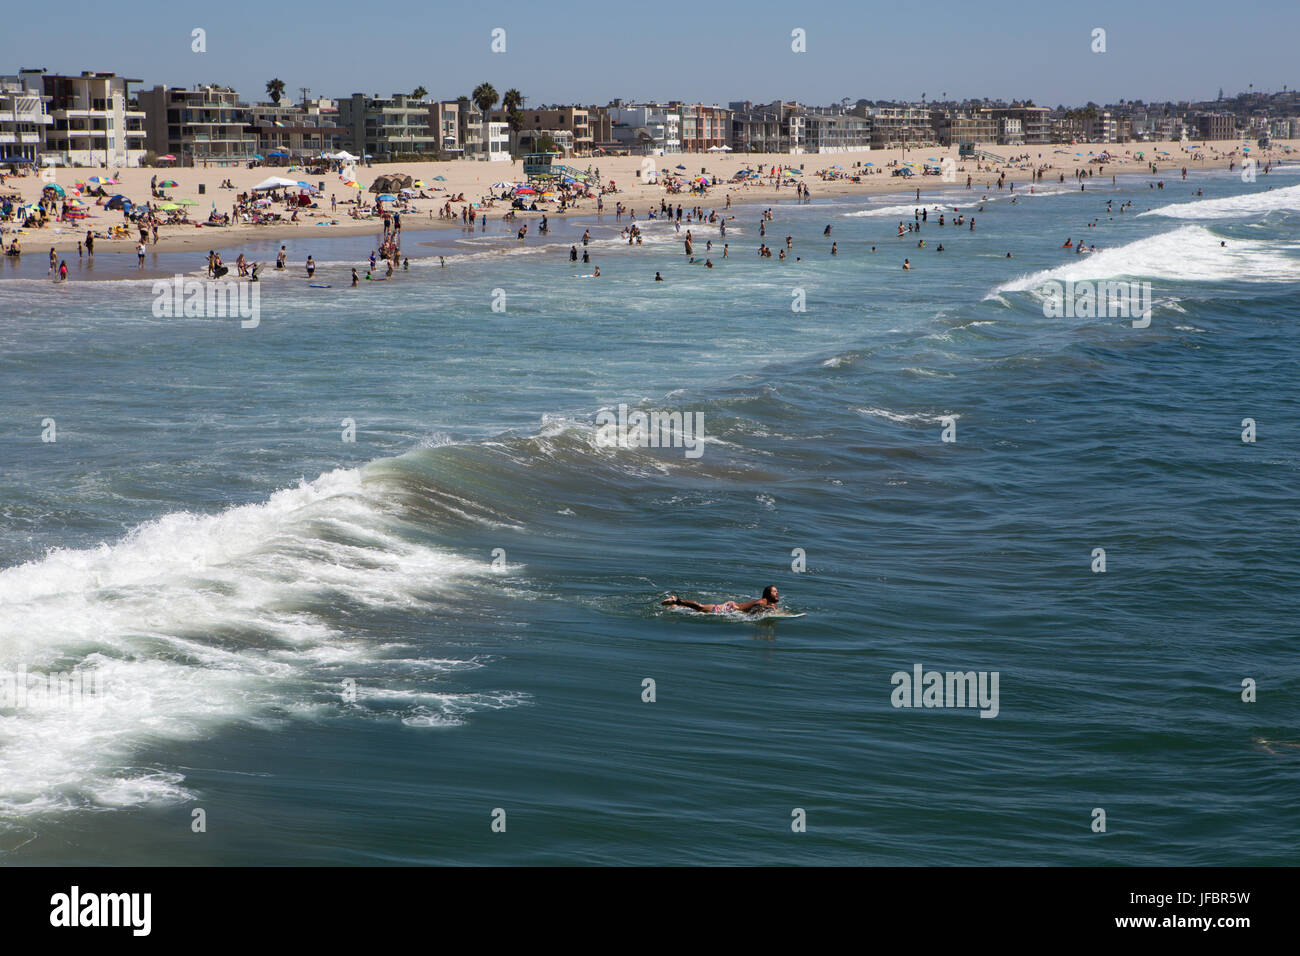 A surfer paddles out away from the crowds settled on Venice Beach. - Stock Image